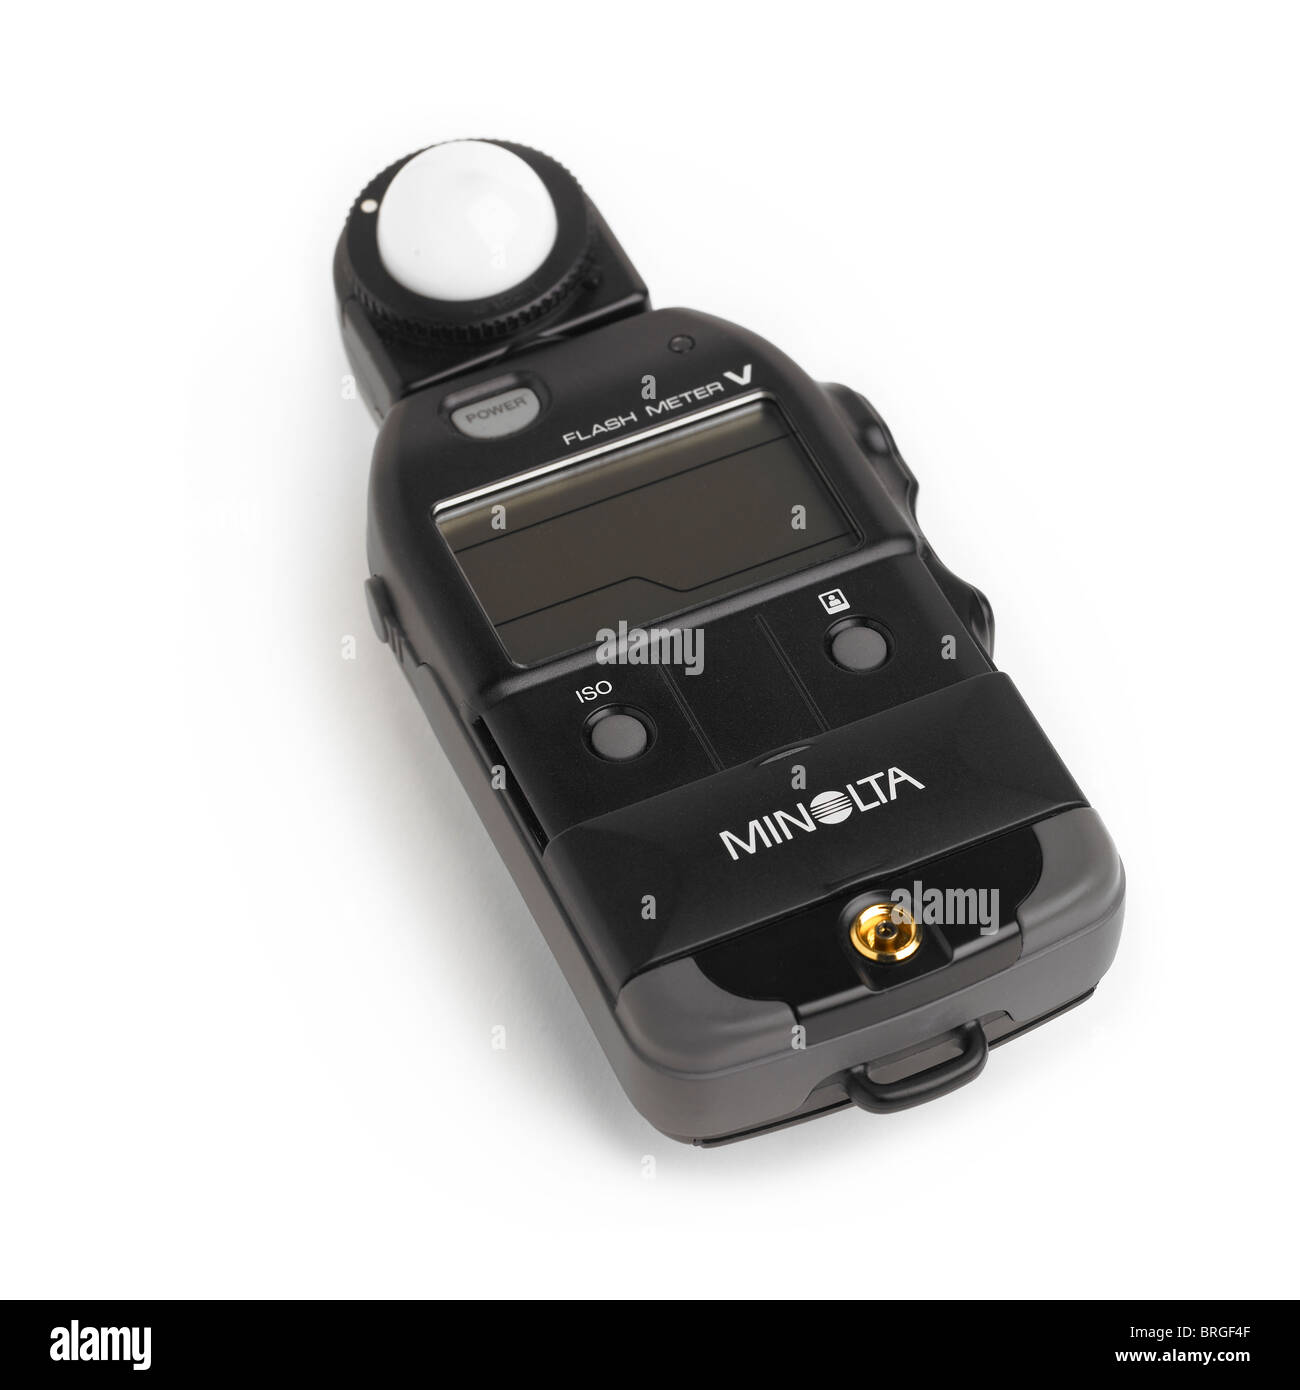 Minolta Flash Meter V on a White Background - Stock Image